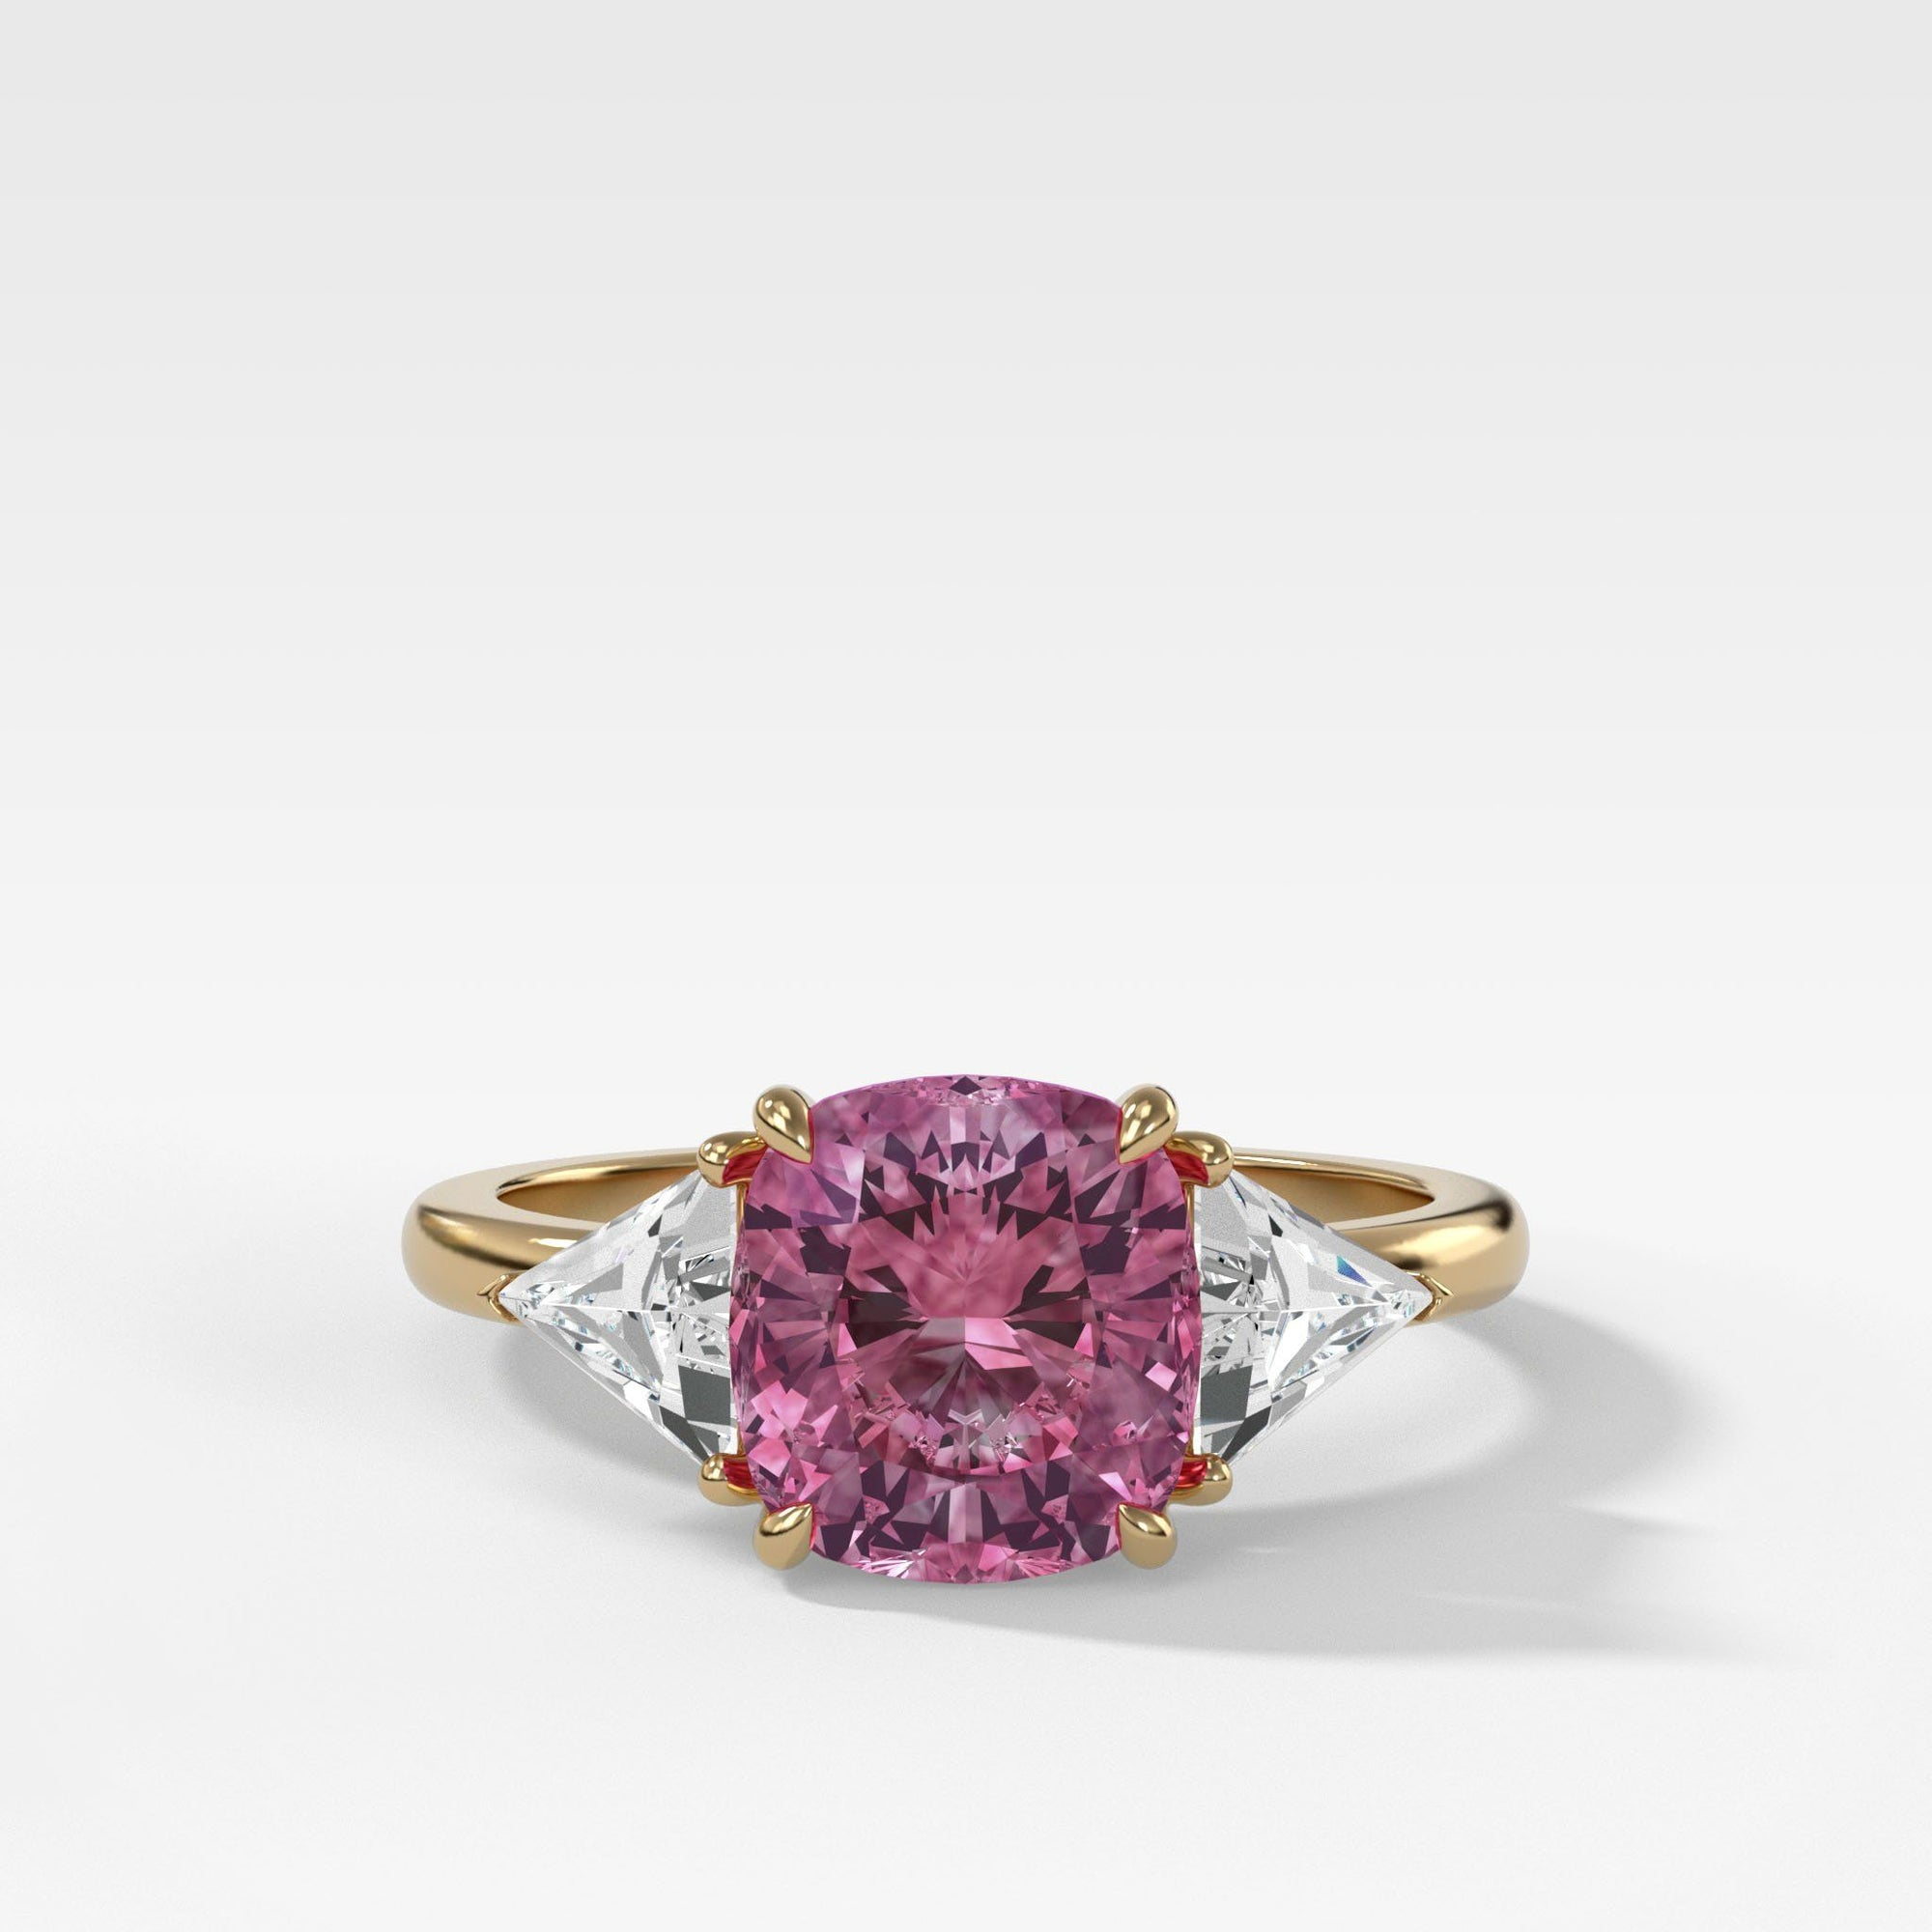 Vintage 2.35ct Pink Sapphire Three Stone Ring with Trillion Diamond Sides in Yellow Gold by Good Stone